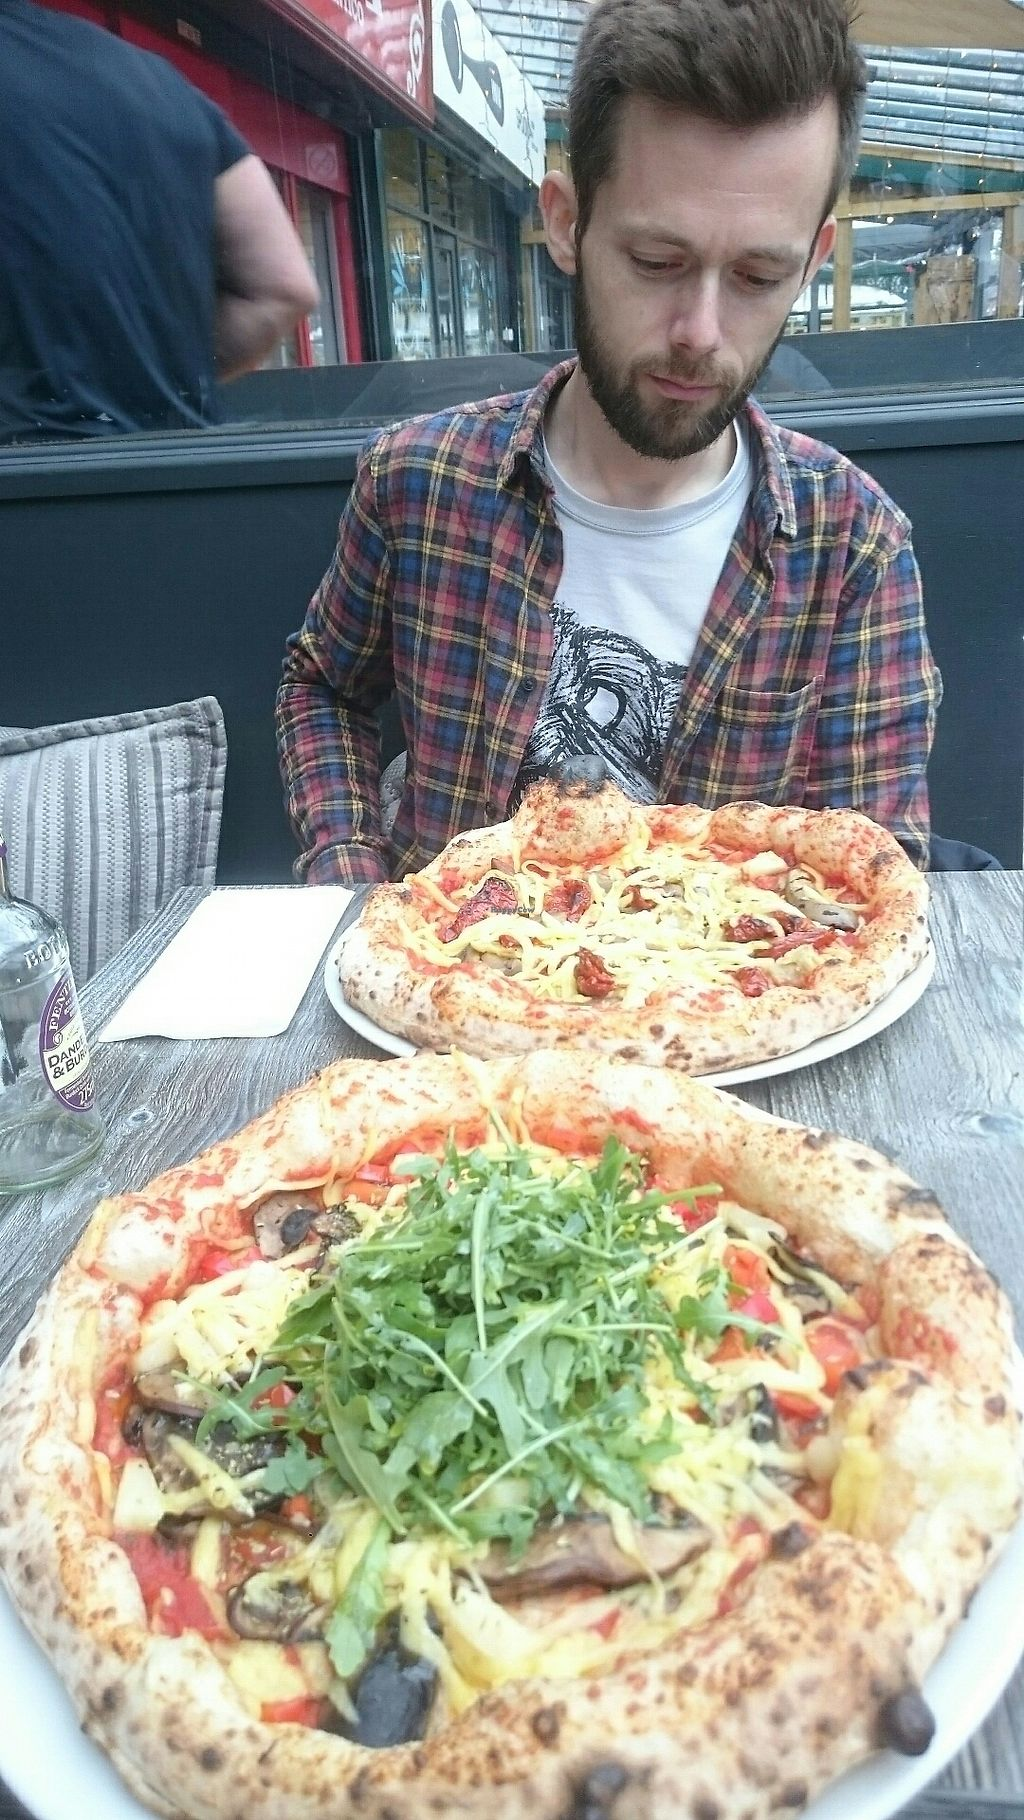 """Photo of Double Zero 00 Neapolitan Pizza  by <a href=""""/members/profile/veganfishcake"""">veganfishcake</a> <br/>Best vegan pizza in Manchester  <br/> August 5, 2017  - <a href='/contact/abuse/image/95851/289368'>Report</a>"""